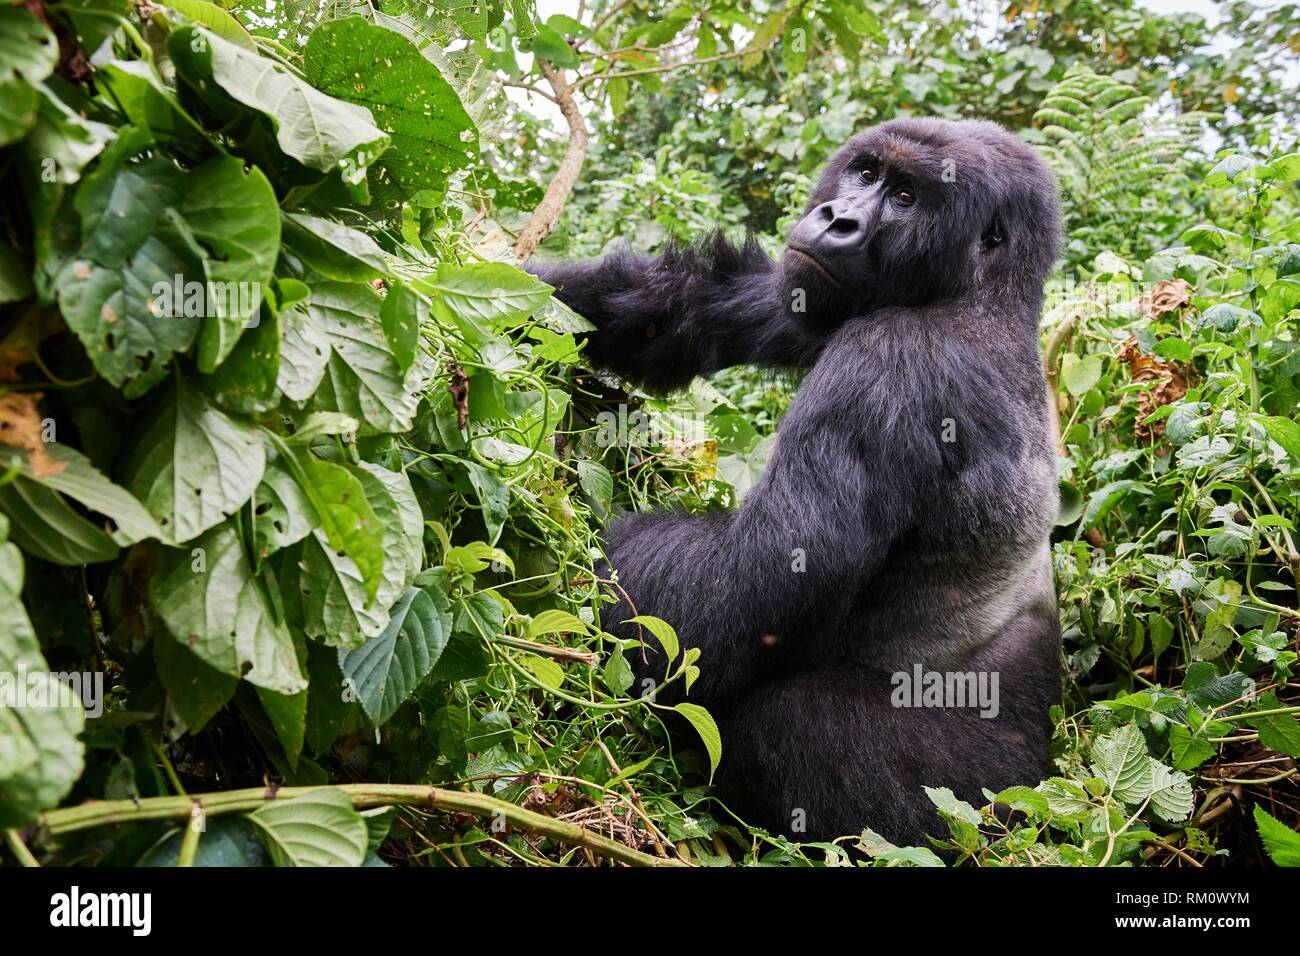 Silverback Mountain gorilla (Gorilla beringei beringei) member of Kabirizi group. Virunga National Park, North Kivu, Democratic Republic of Congo, - Stock Image